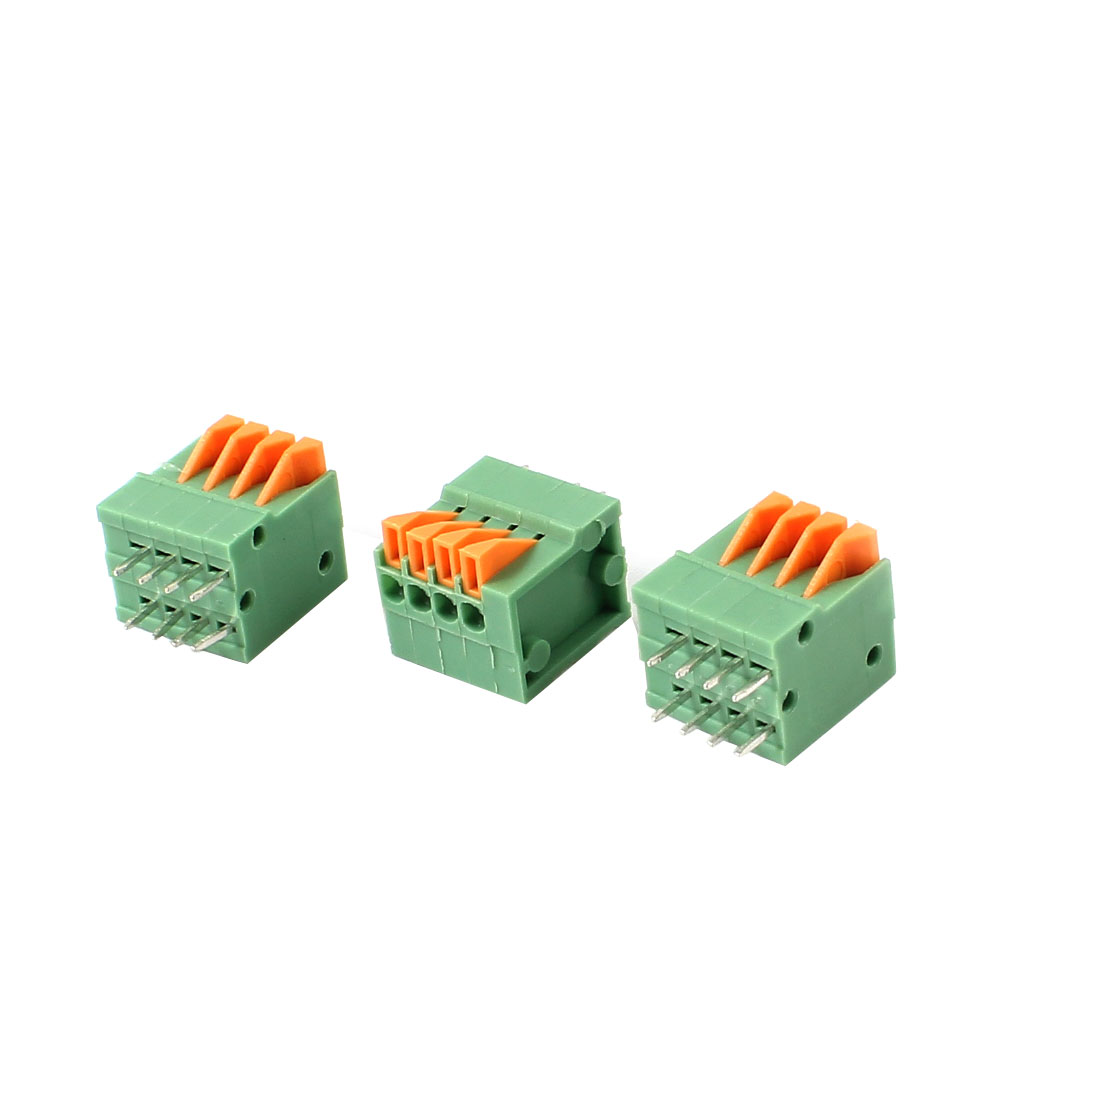 3 Pcs 2.54mm 4 Positions PCB Mount Screwless Spring Terminal Blocks 150V 2A